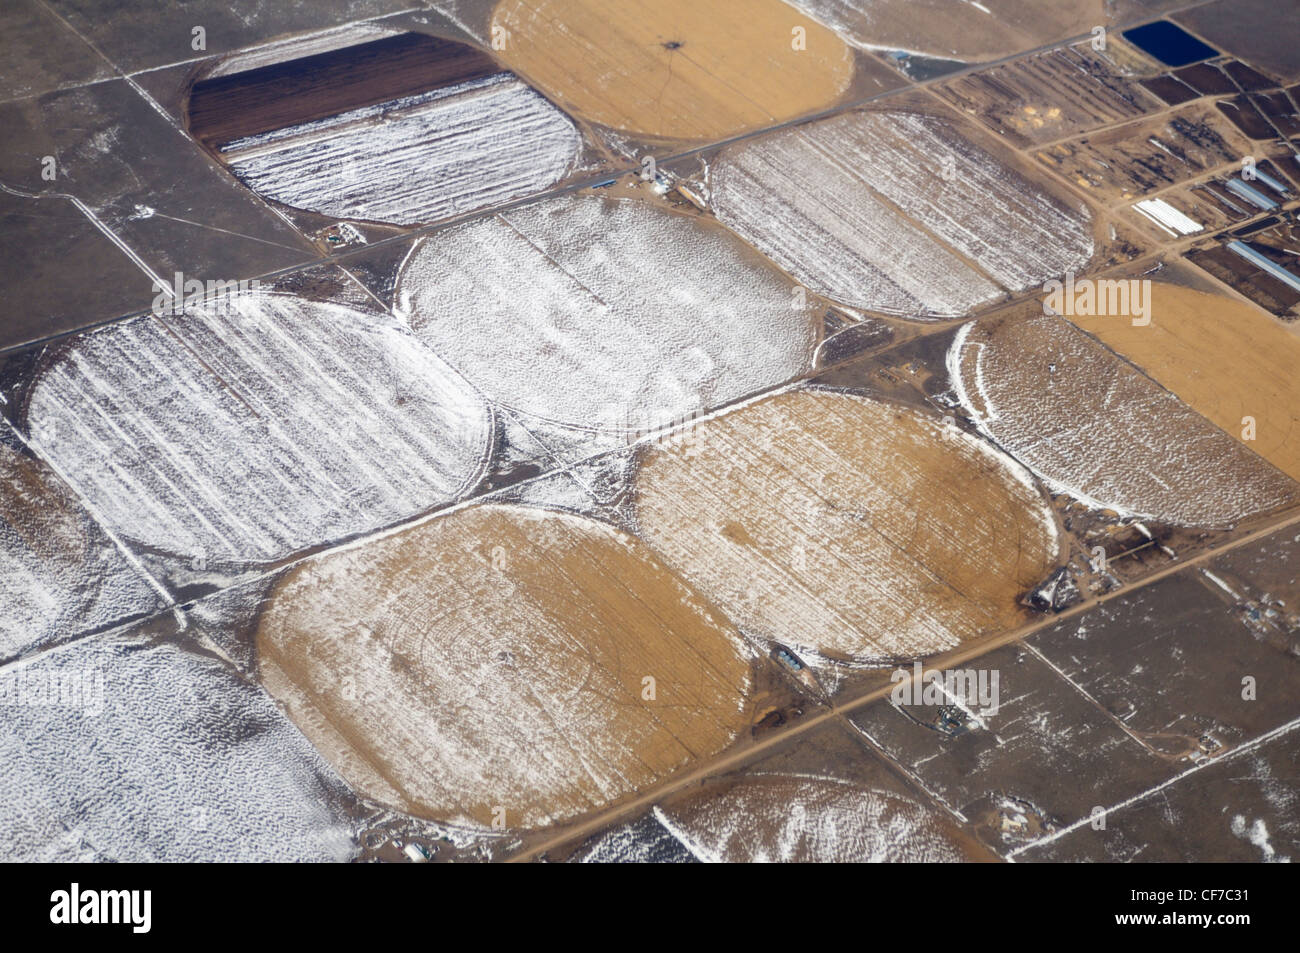 Farmland from 30,000 feet in winter, Kansas, United States - Stock Image